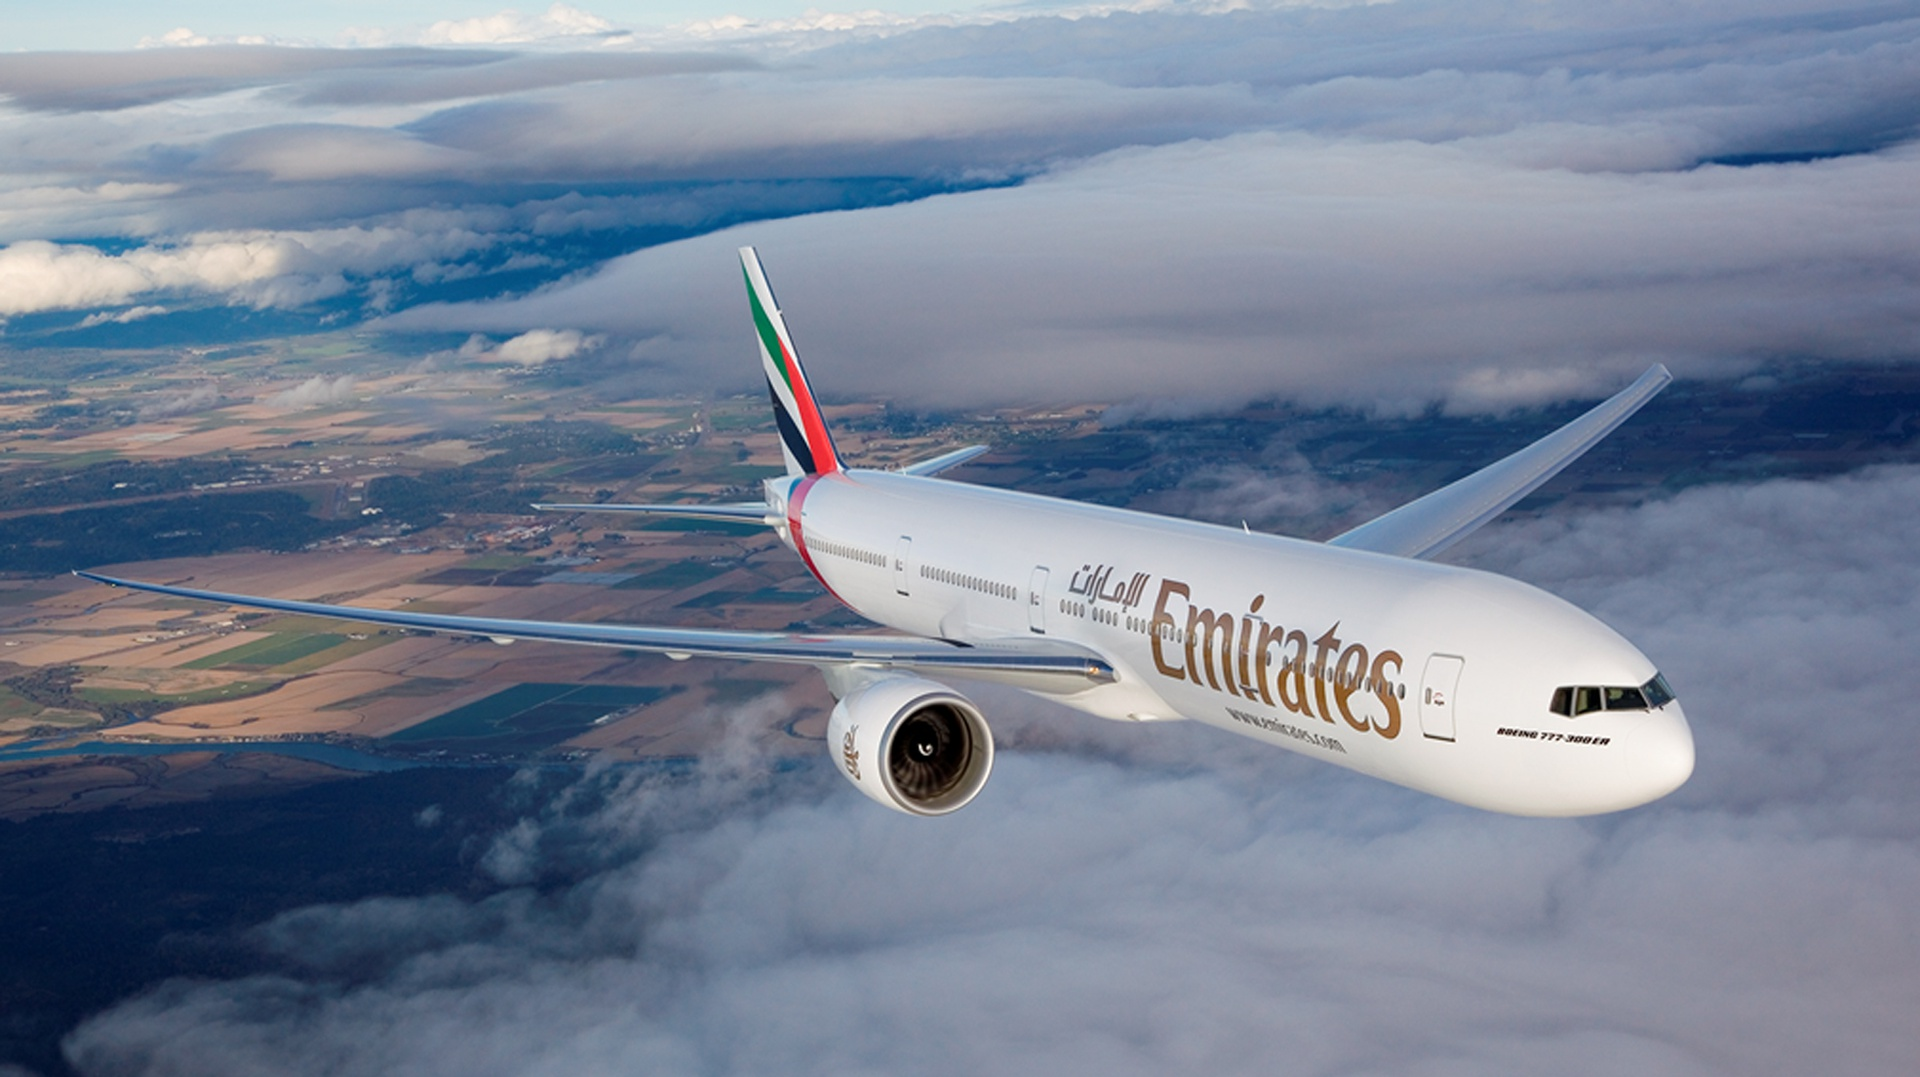 Emirates reports 32nd consecutive year of profit in 2019 1